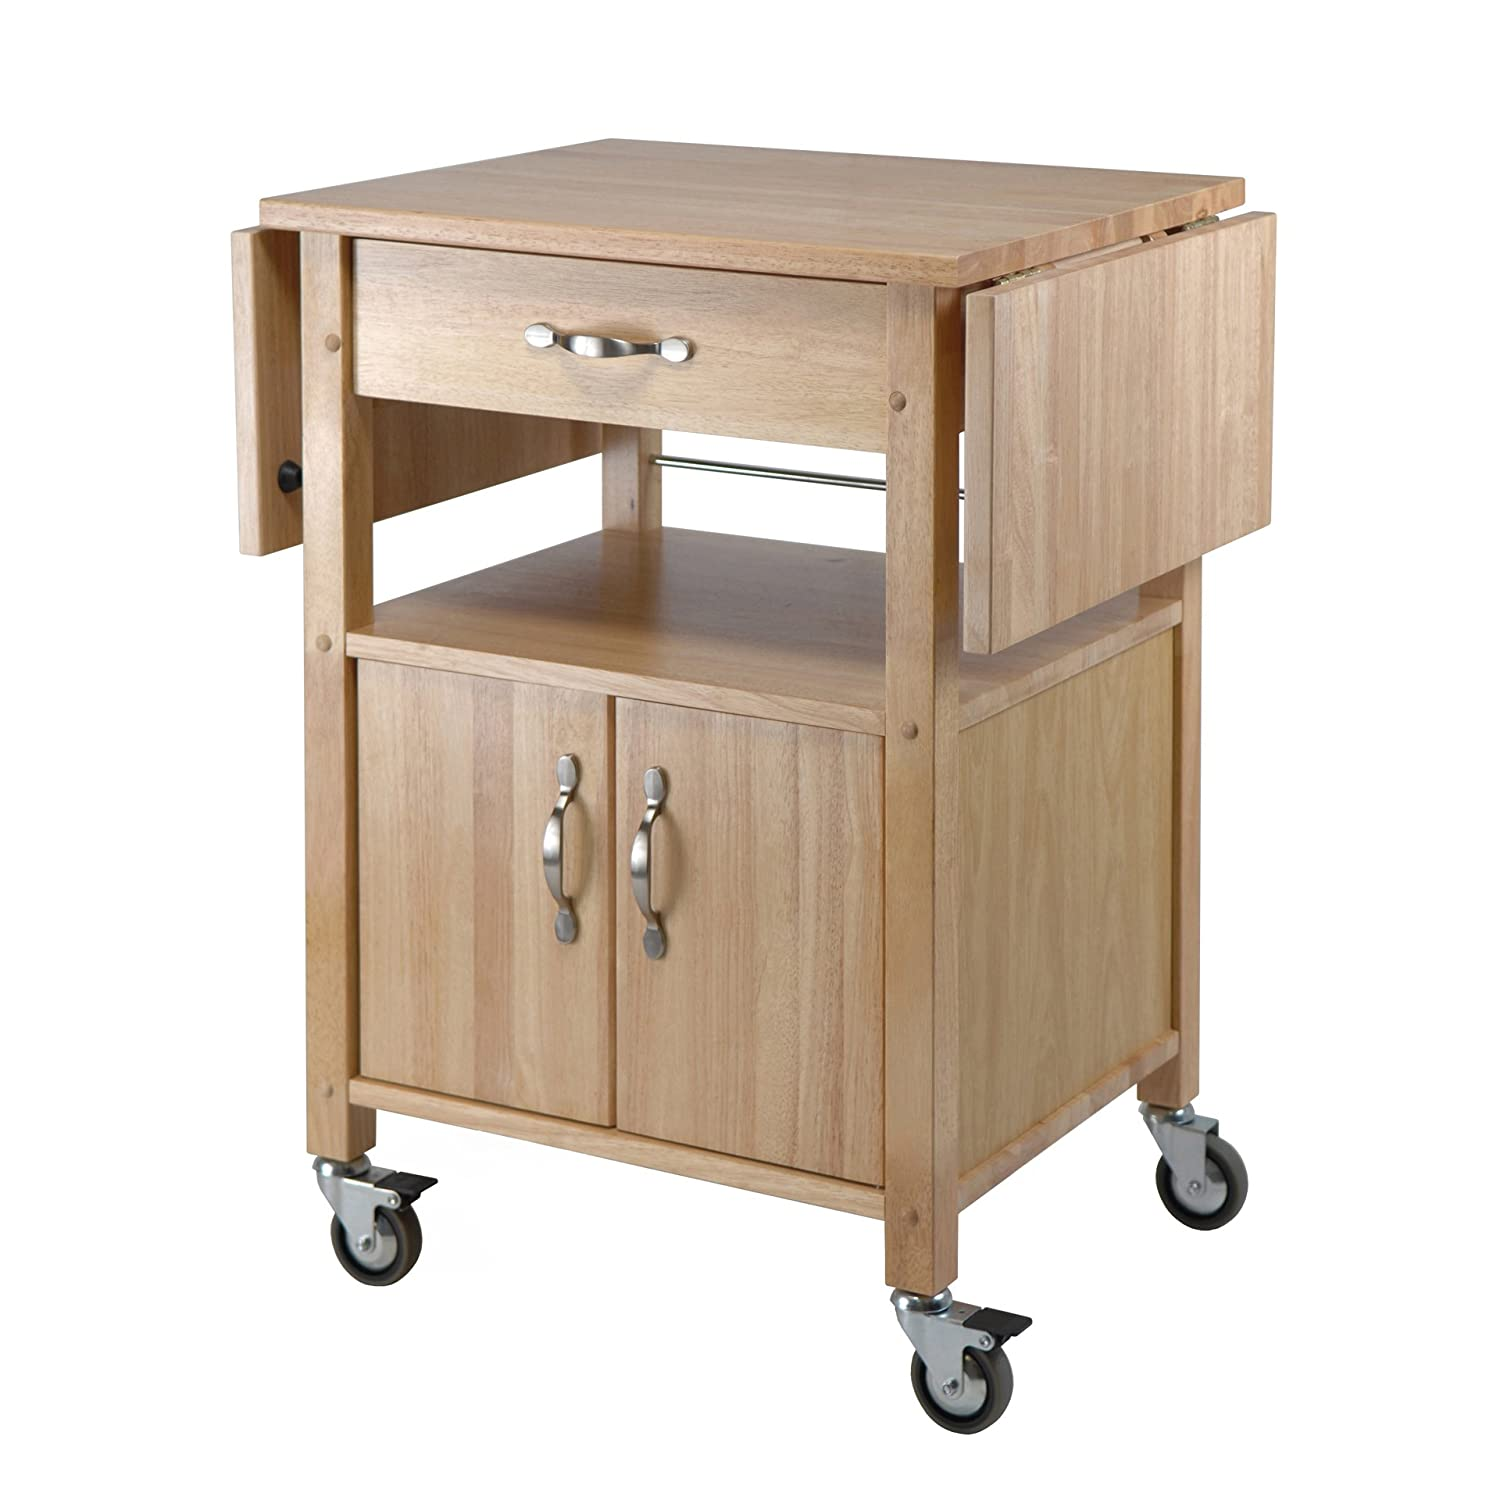 Amazoncom Winsome Wood Drop Leaf Kitchen Cart Bar Serving Carts